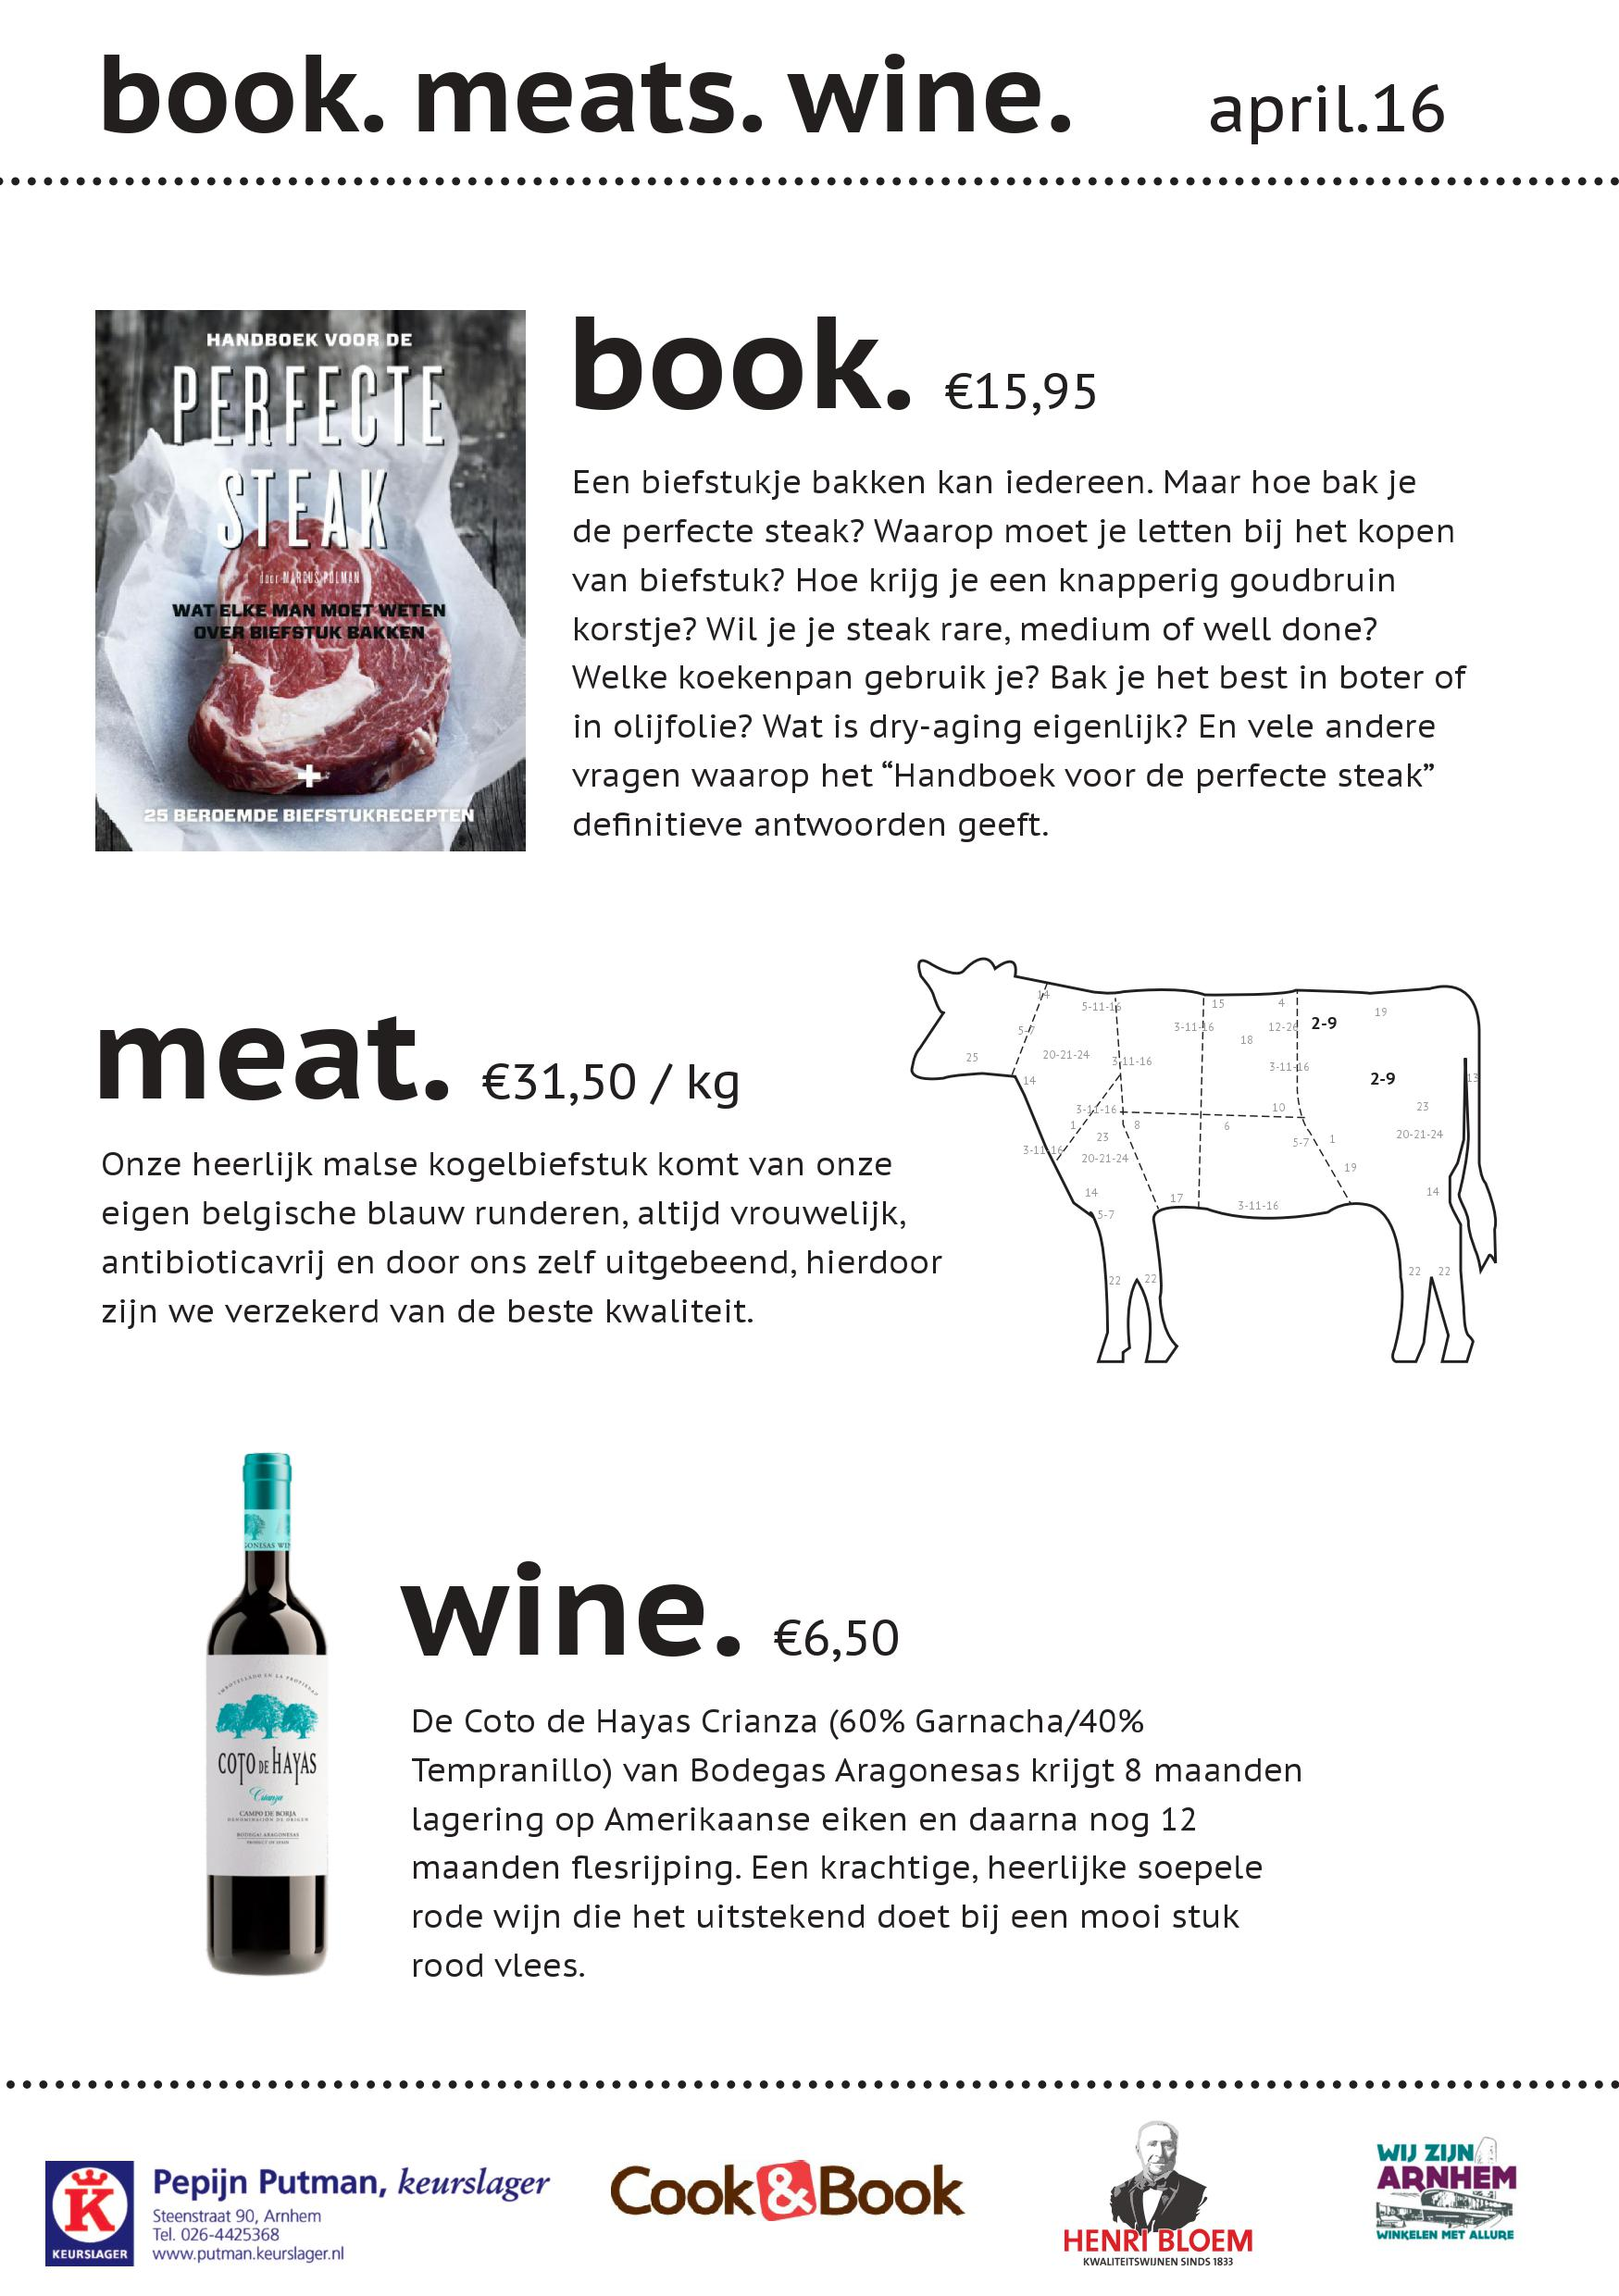 Book Meats Wine April 2016